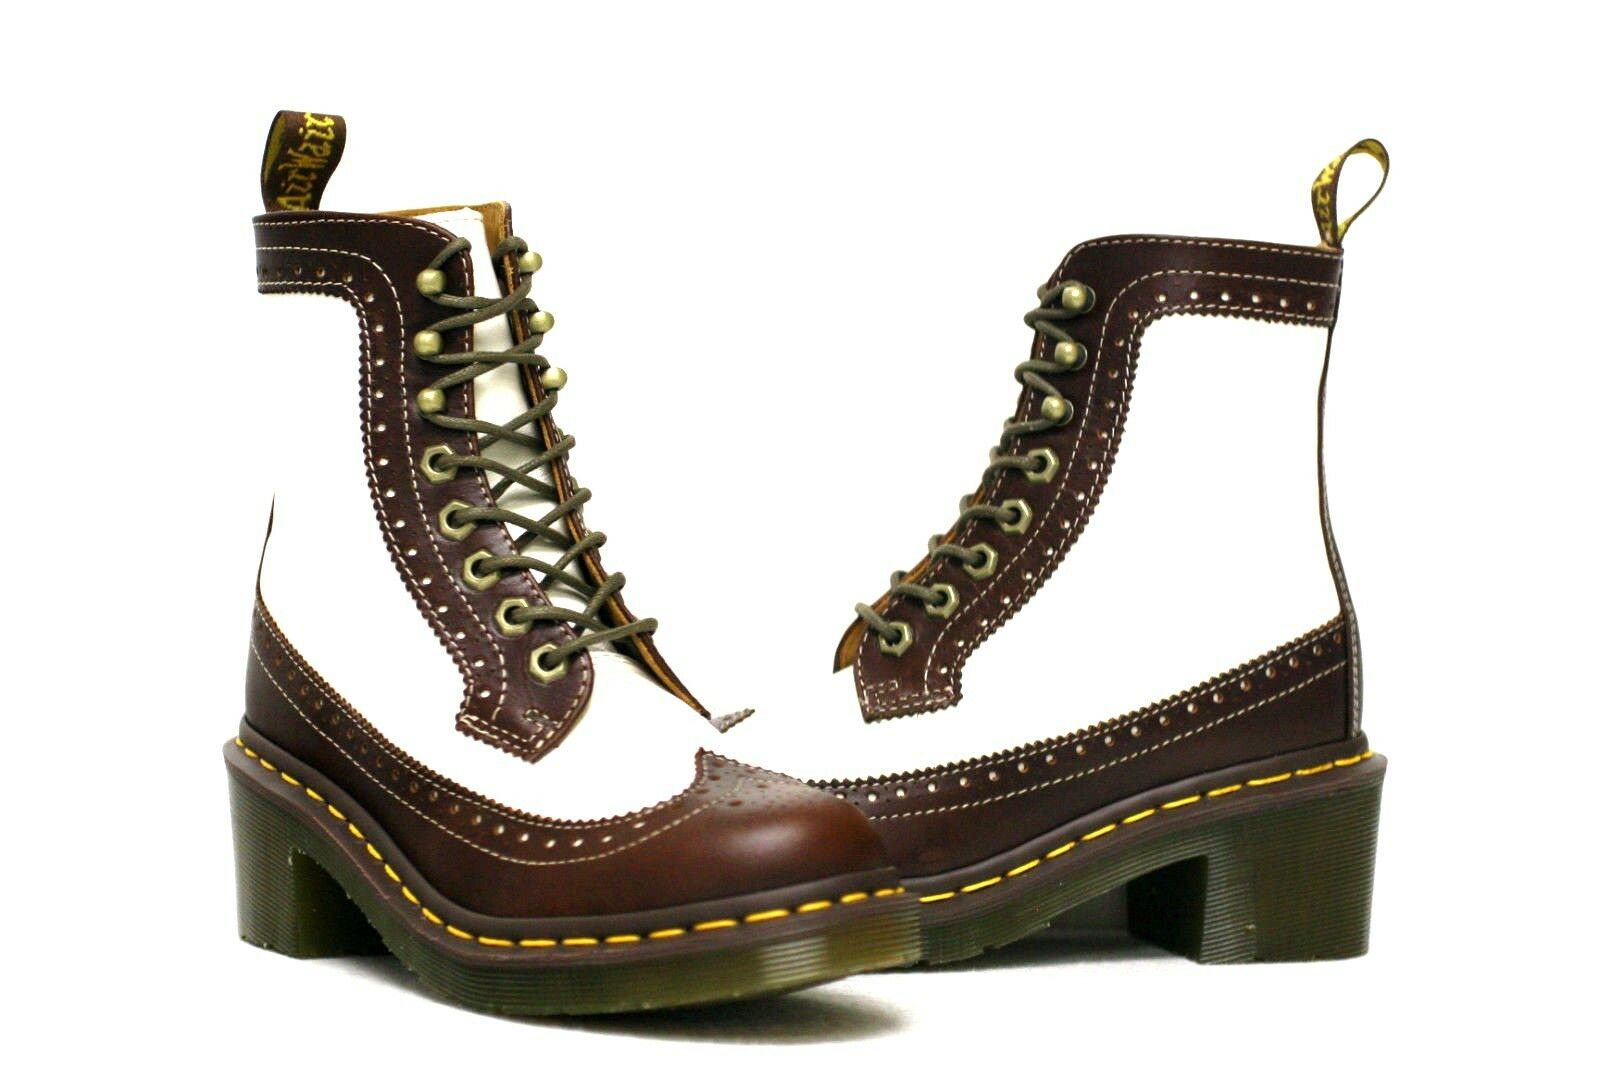 Dr. Martens Gretchen Analine+Softy Boots 15094230 US Woman Sizes: 5 - 6